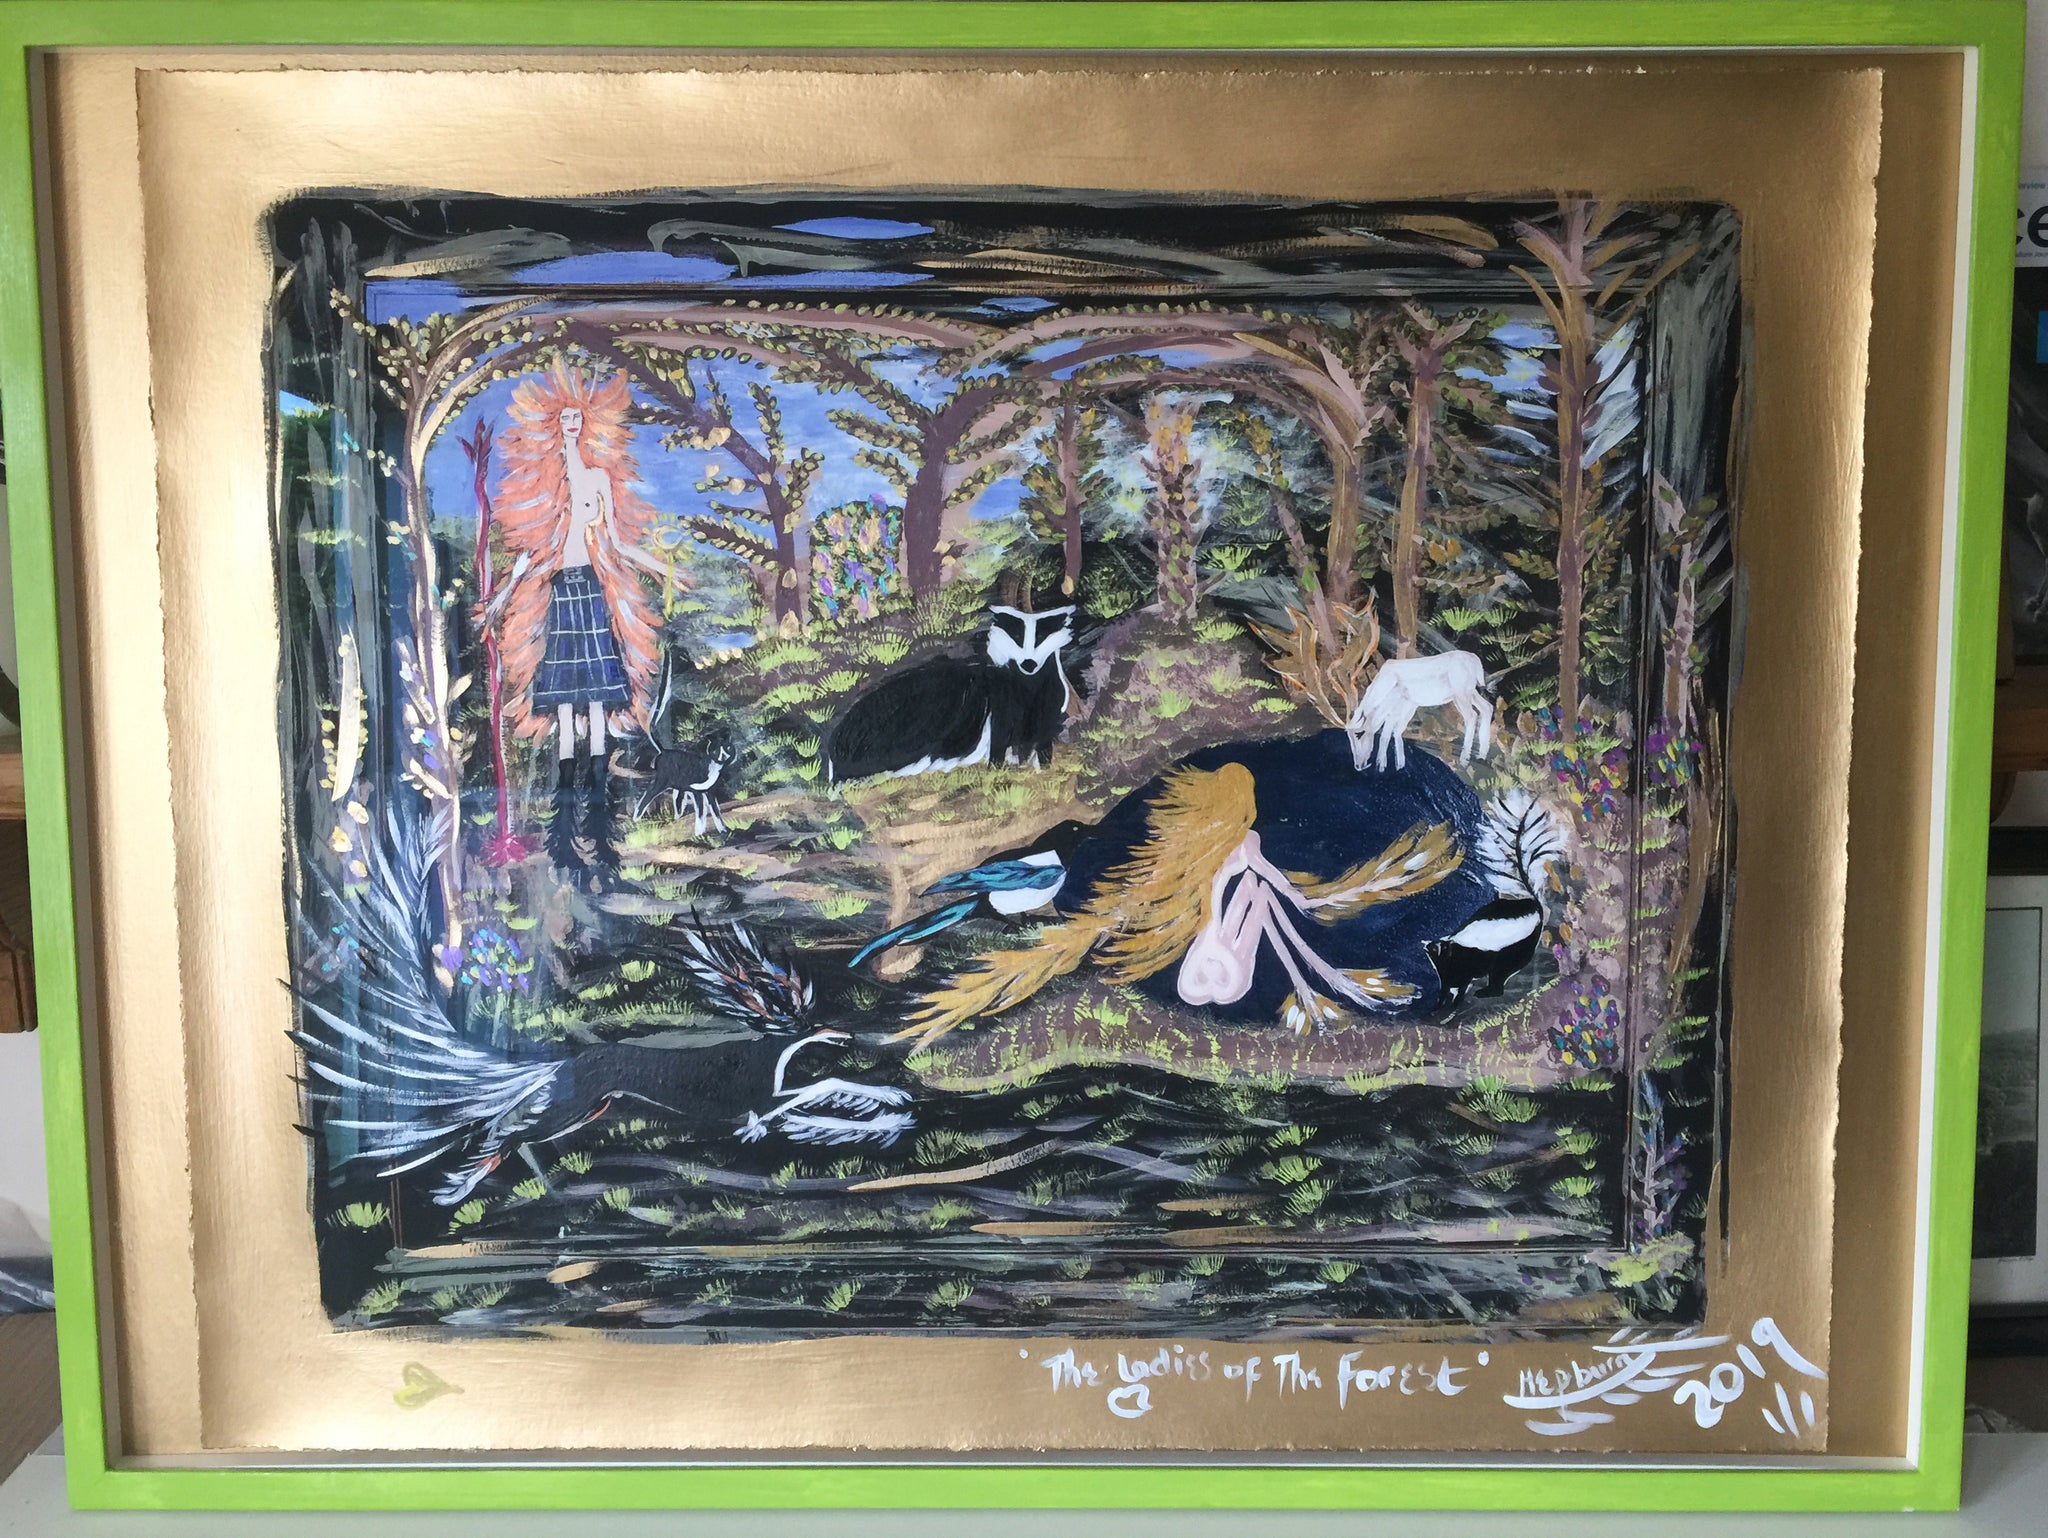 The Ladies of The Forest - Framed 90.5 x 70cm Unique